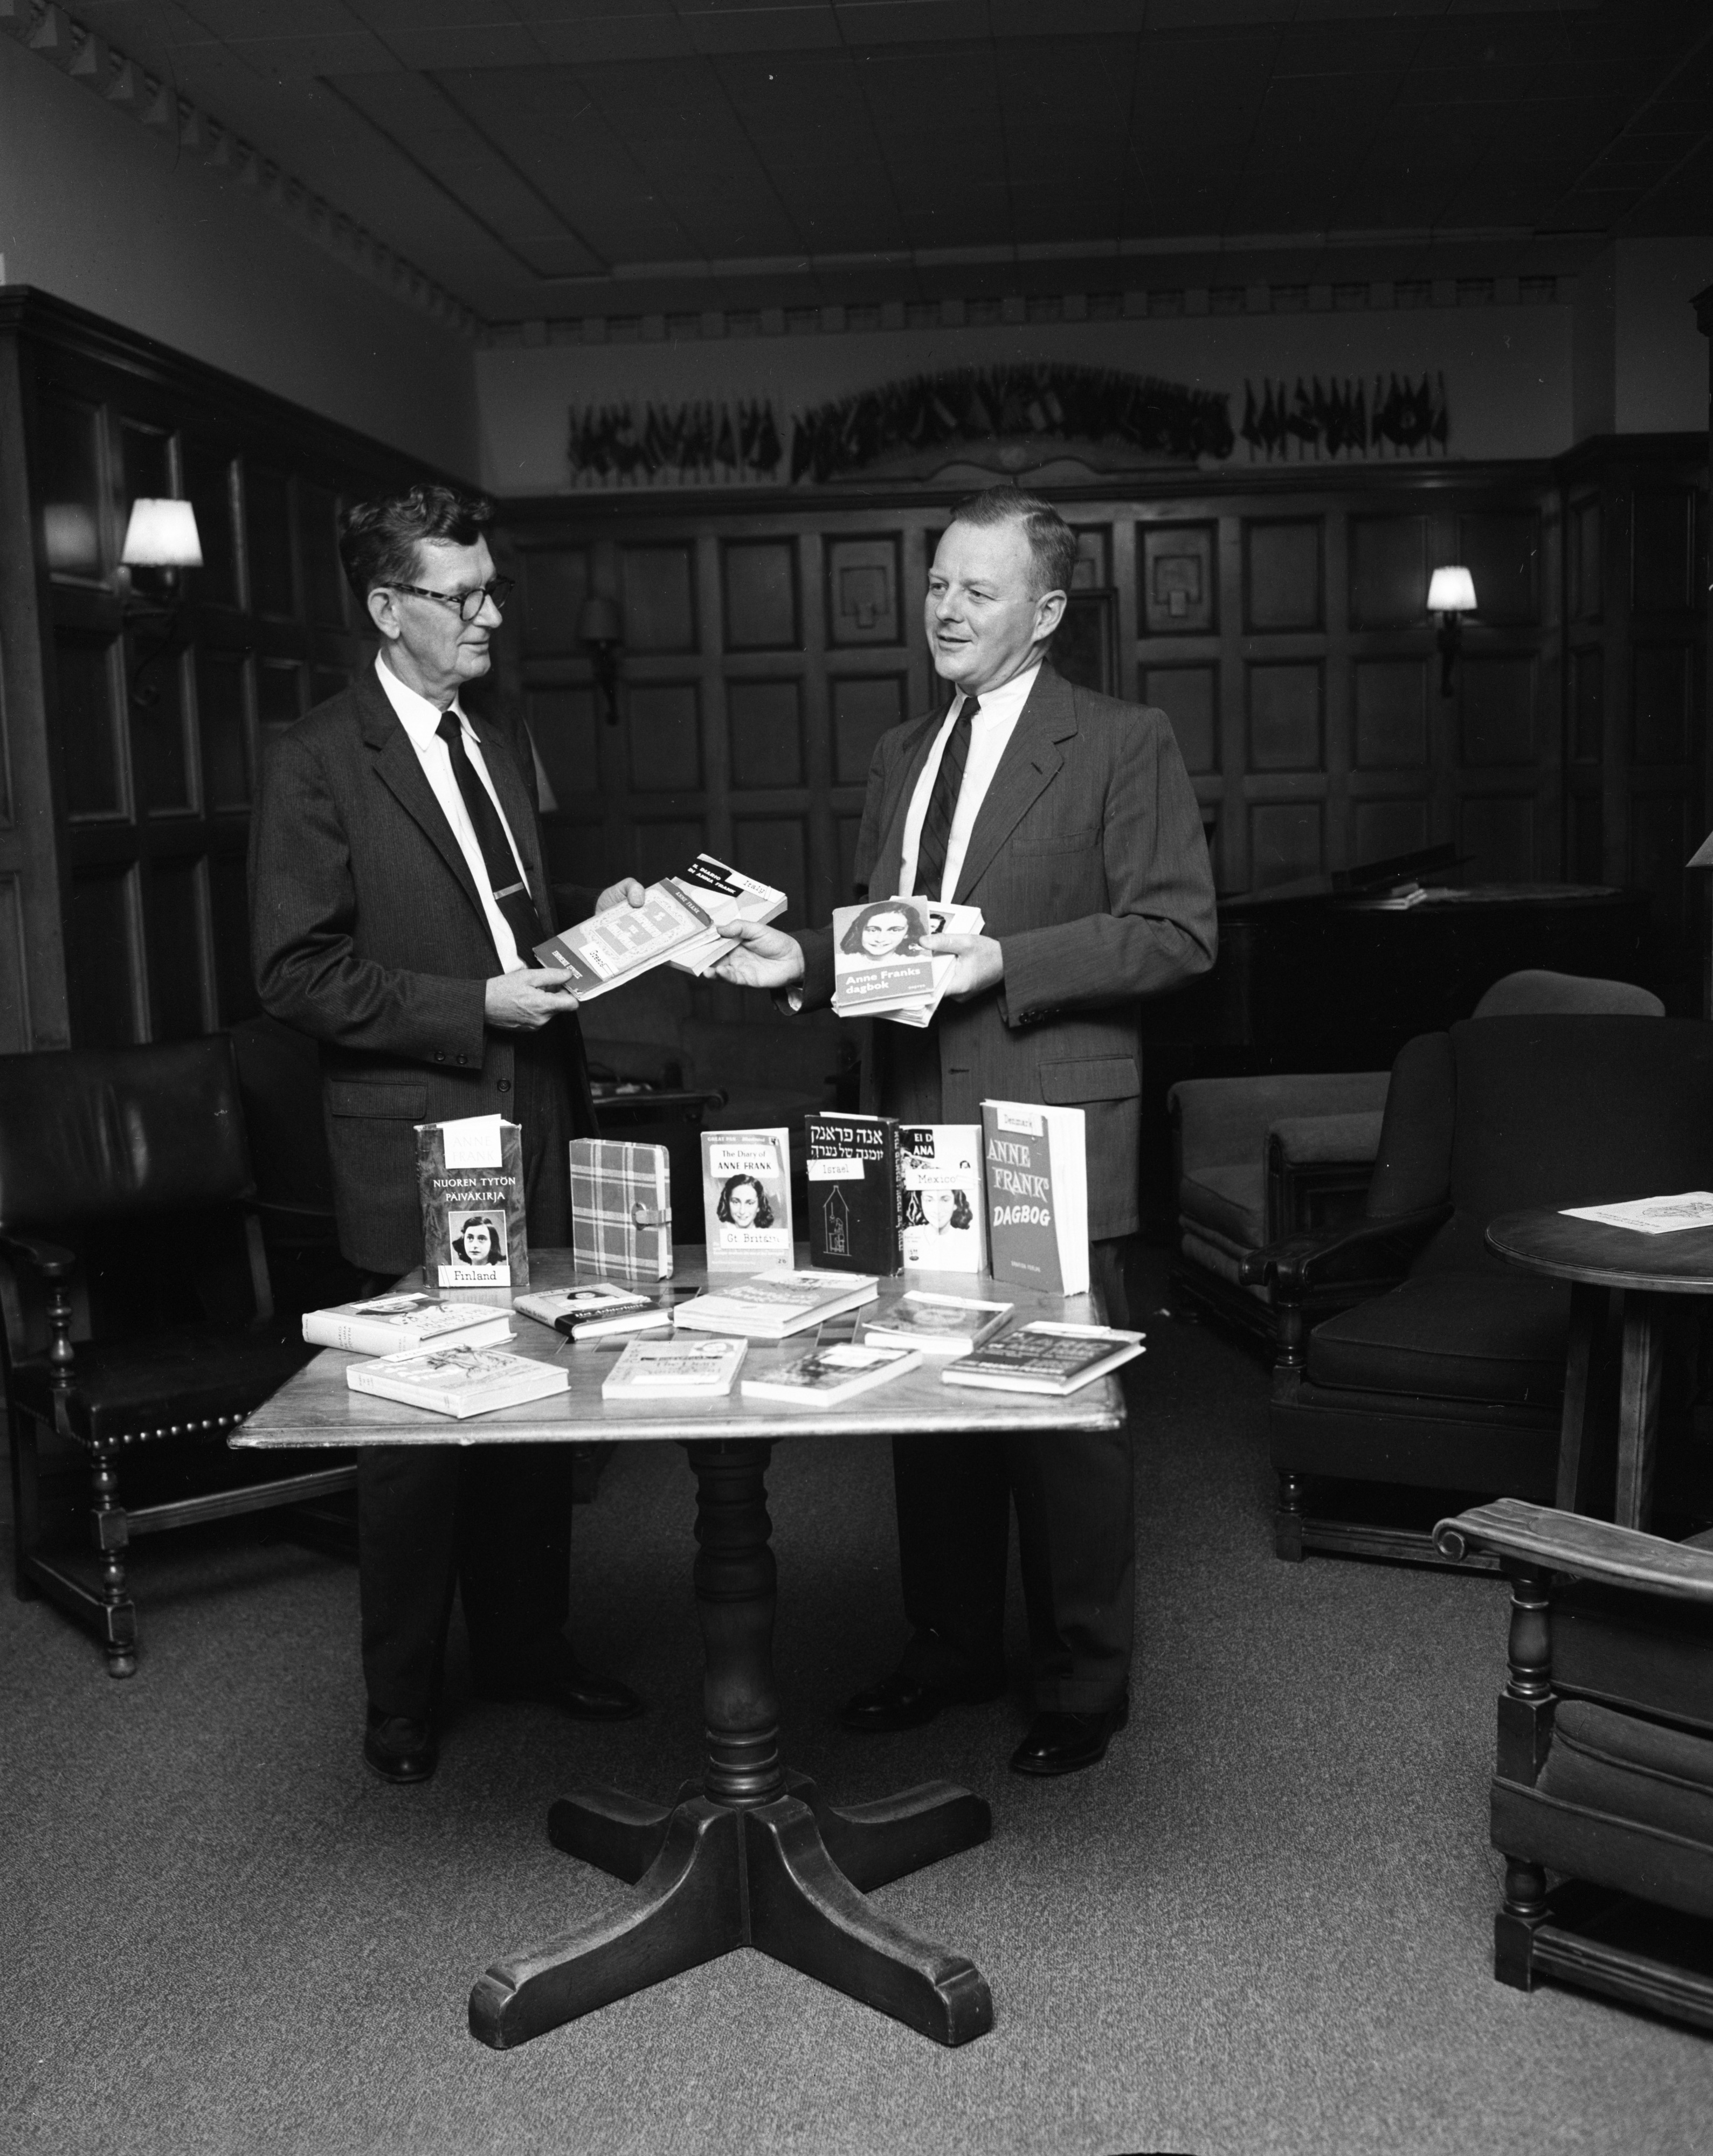 Michigan Theater's Gerald Hoag presents books to Dr. James M. Davis of the University's International Center, September 1959 image